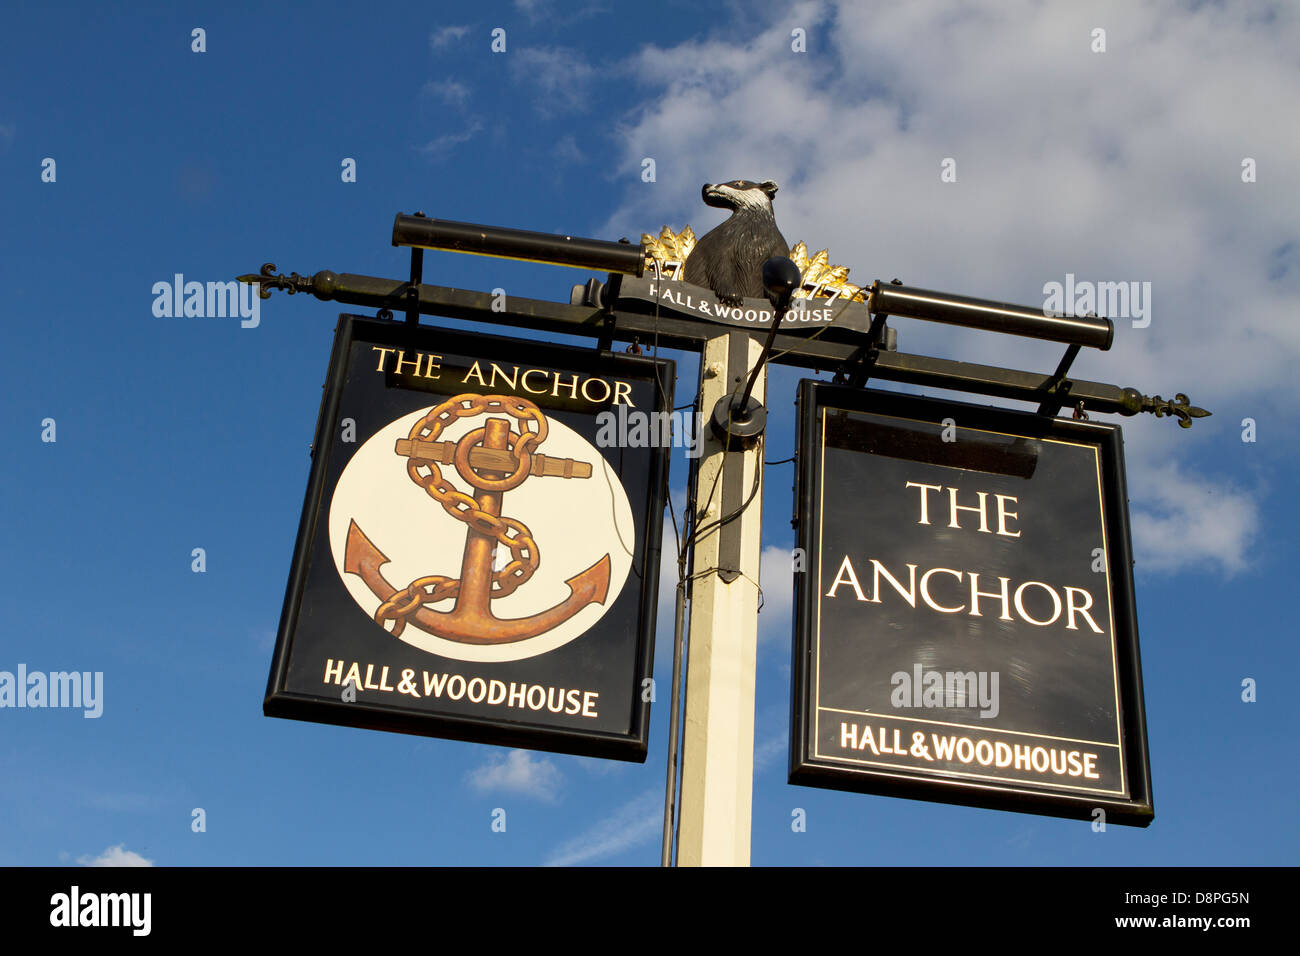 Sign for The Anchor, Pyrford.  A Hall & Woodhouse pub and restaurant. Stock Photo